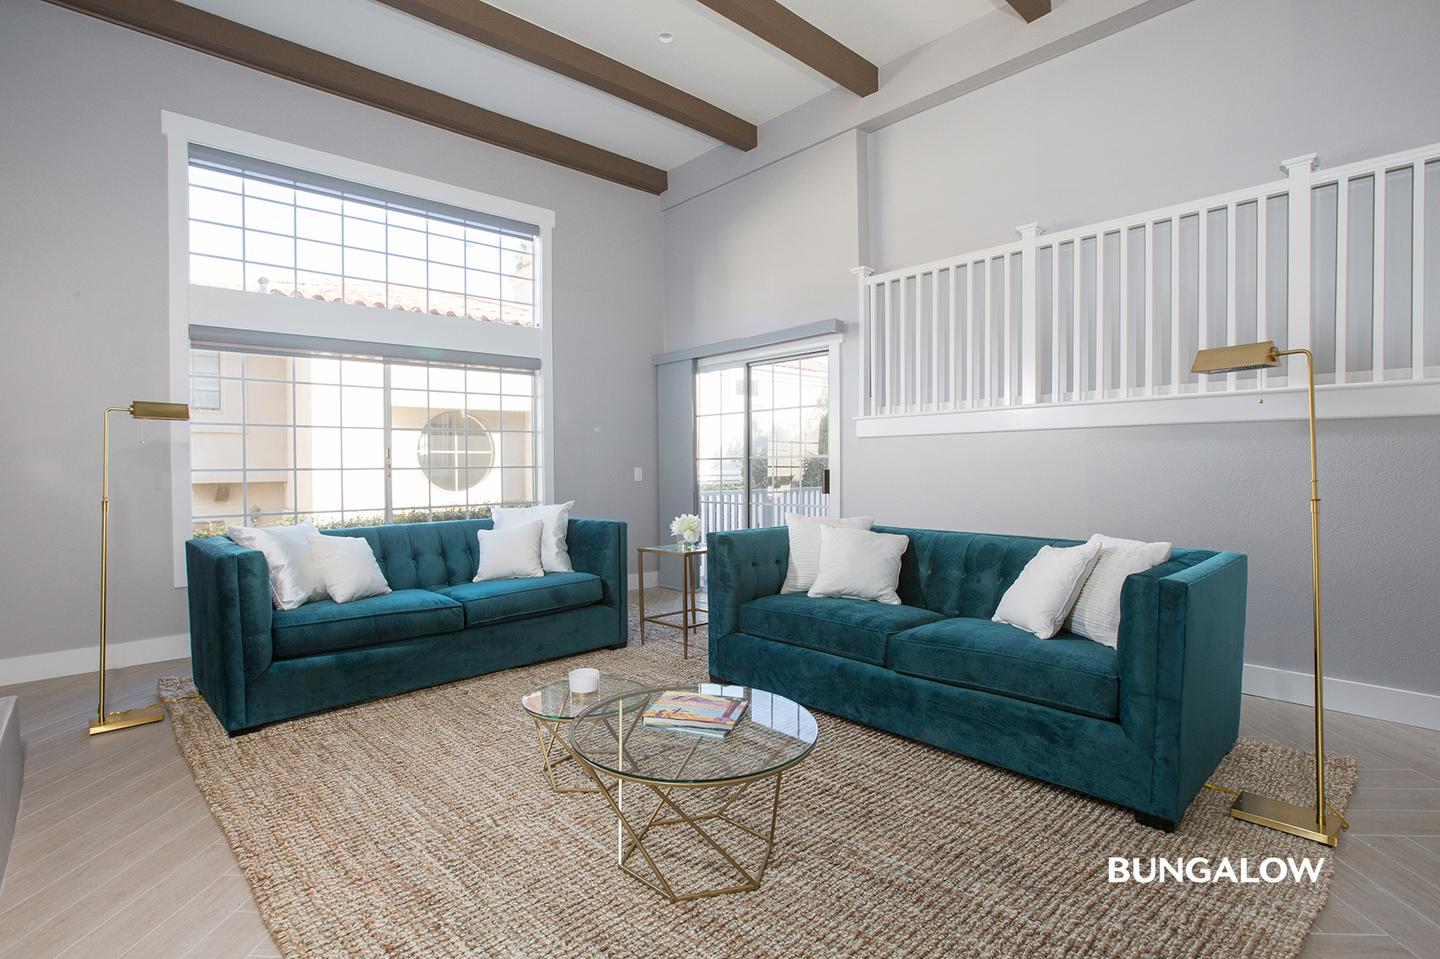 Apartments Near UCLA Private Bedroom in Gorgeous Redondo Beach Home With Backyard Fire Pit for University of California - Los Angeles Students in Los Angeles, CA